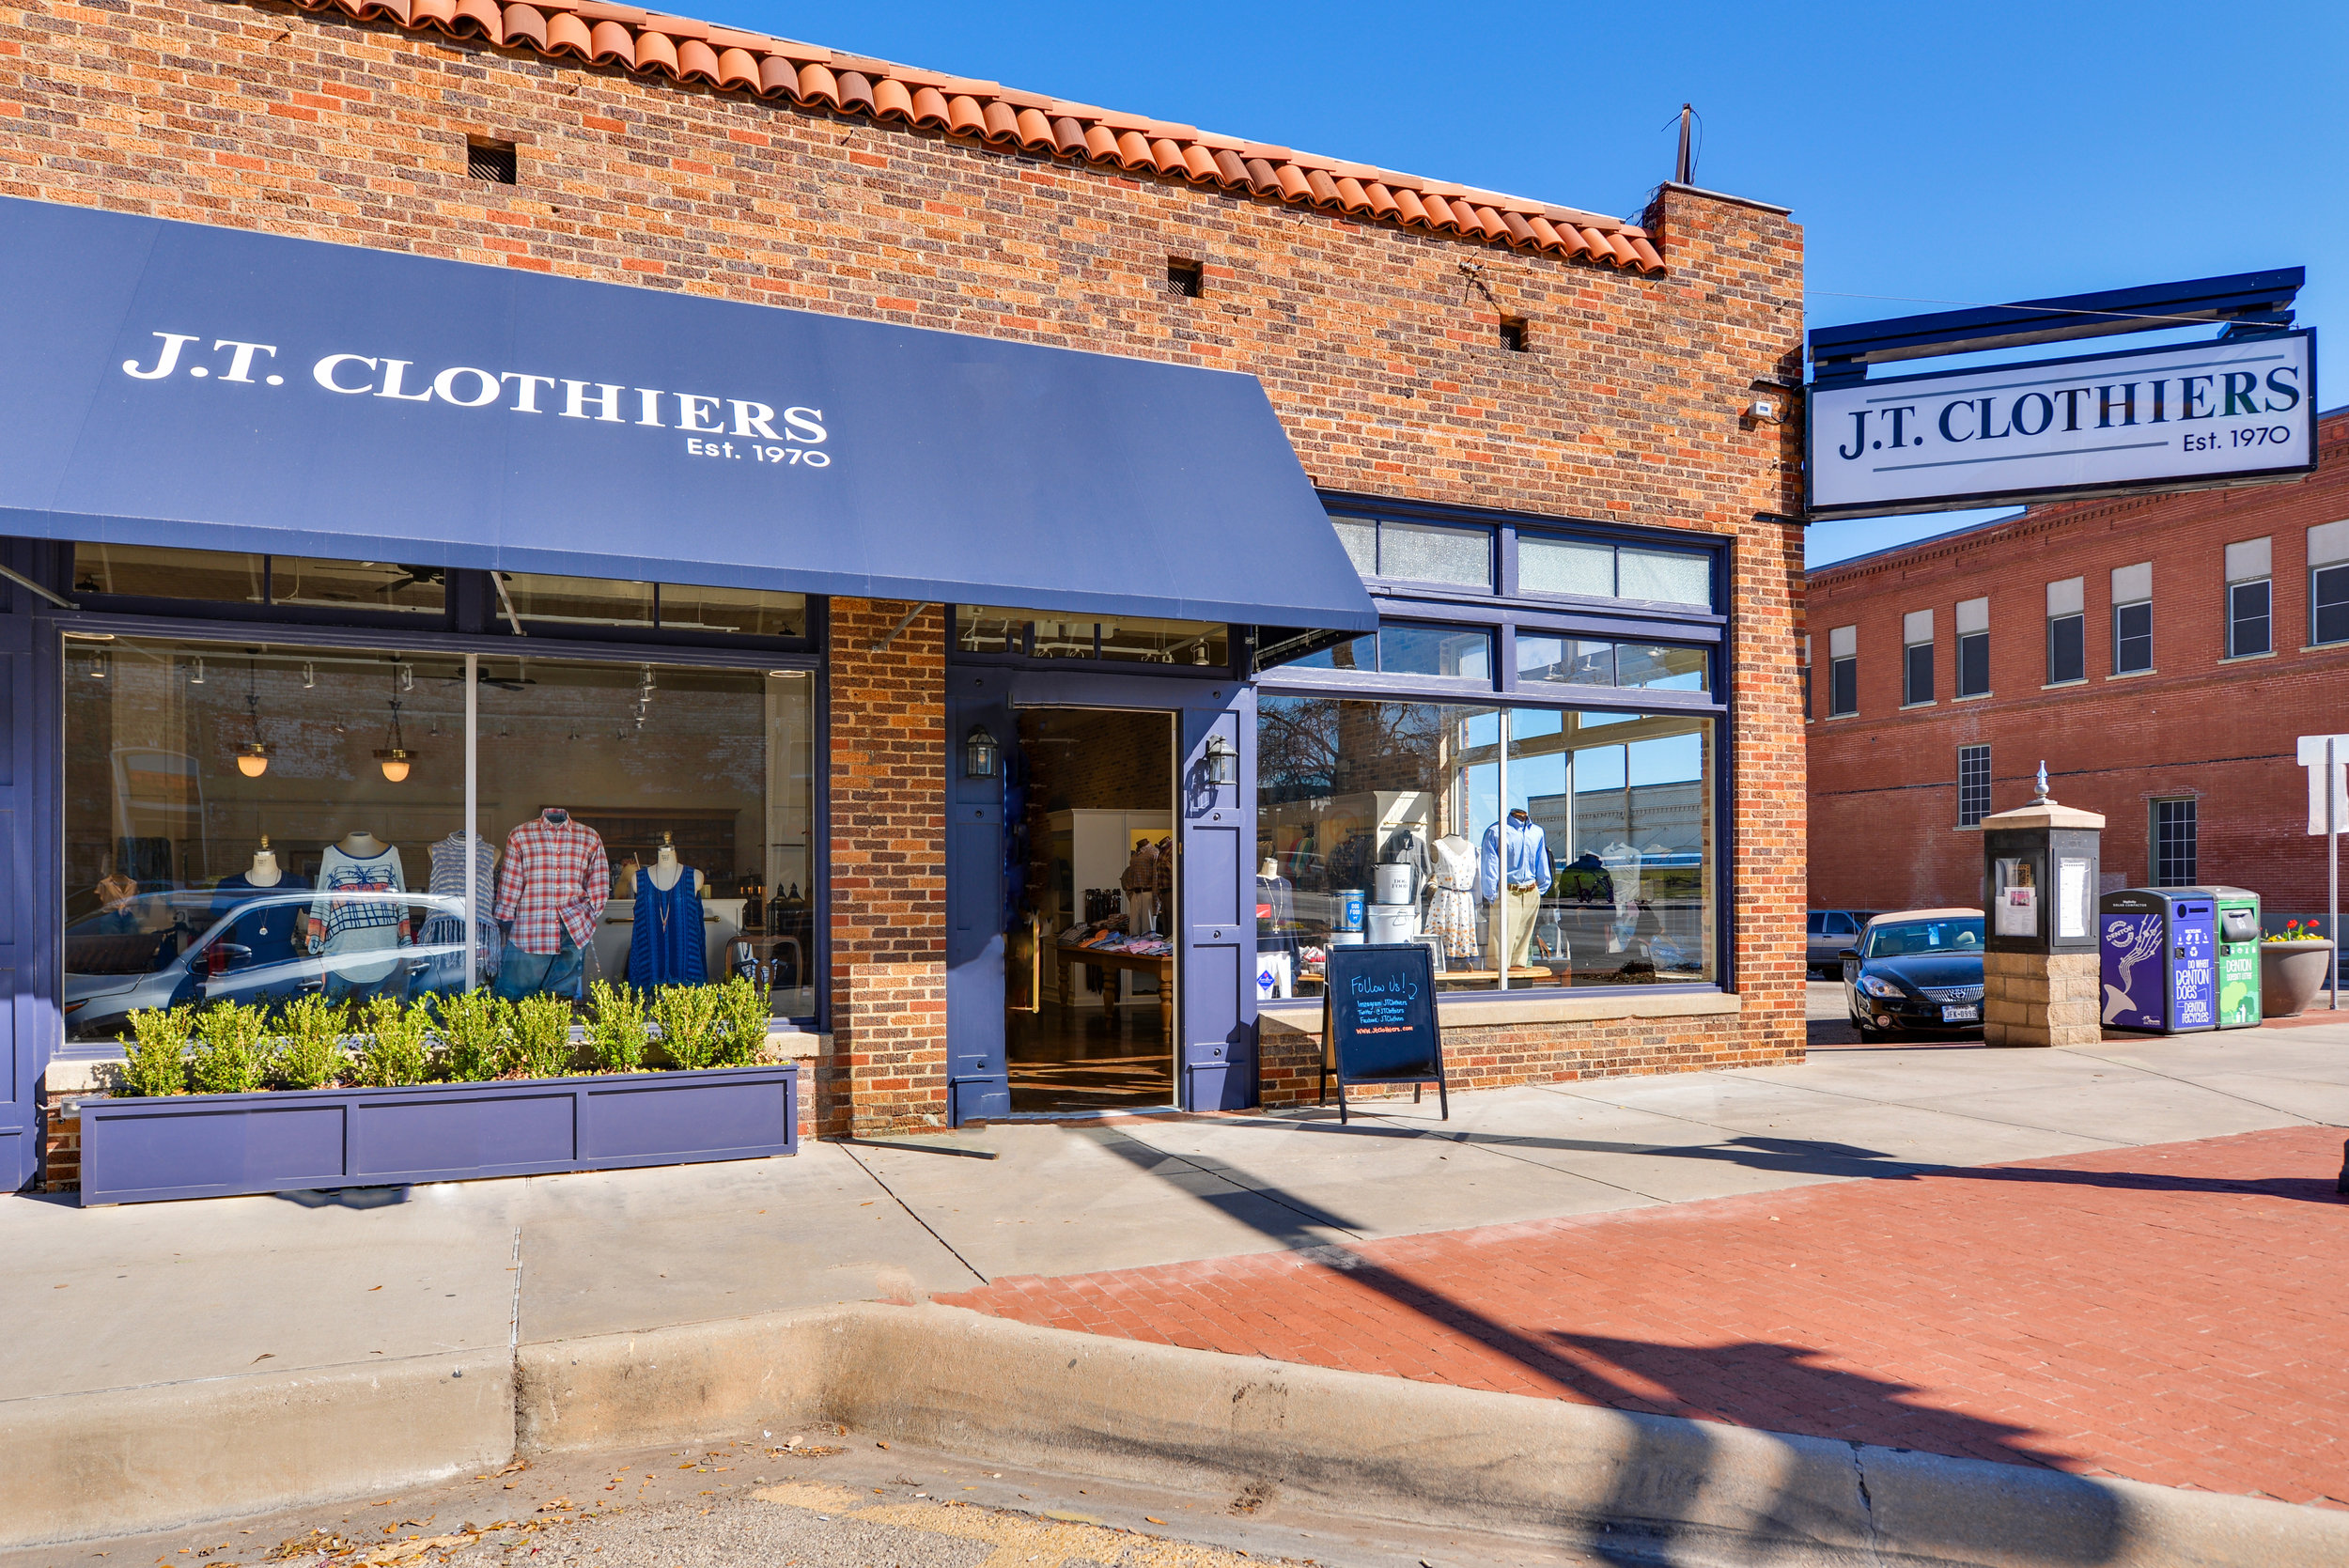 JT Clothiers Photos without the sign.jpg